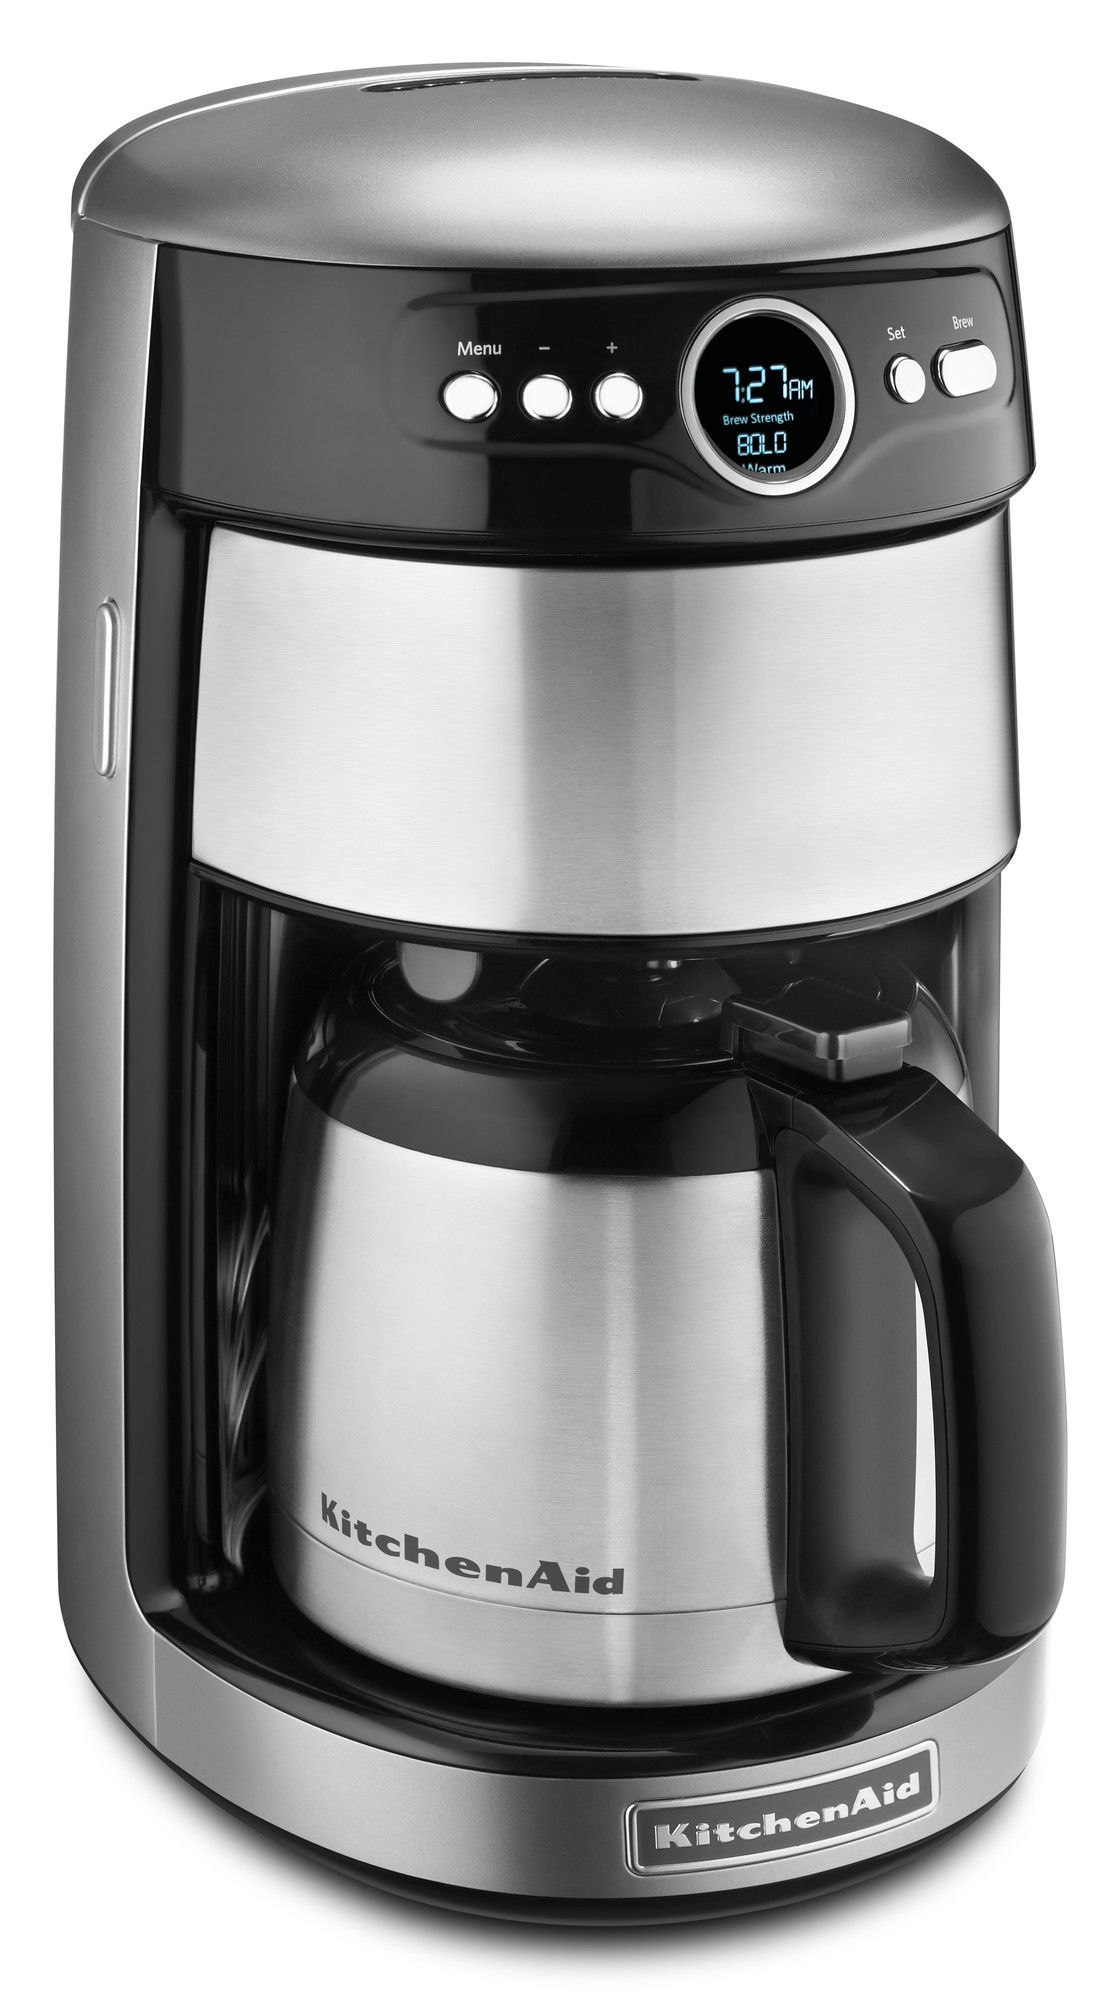 Kitchenaid 12 Cup Thermal Carafe Coffee Maker Allmodern Thermal Coffee Maker Kitchen Aid Coffee Maker Best Drip Coffee Maker